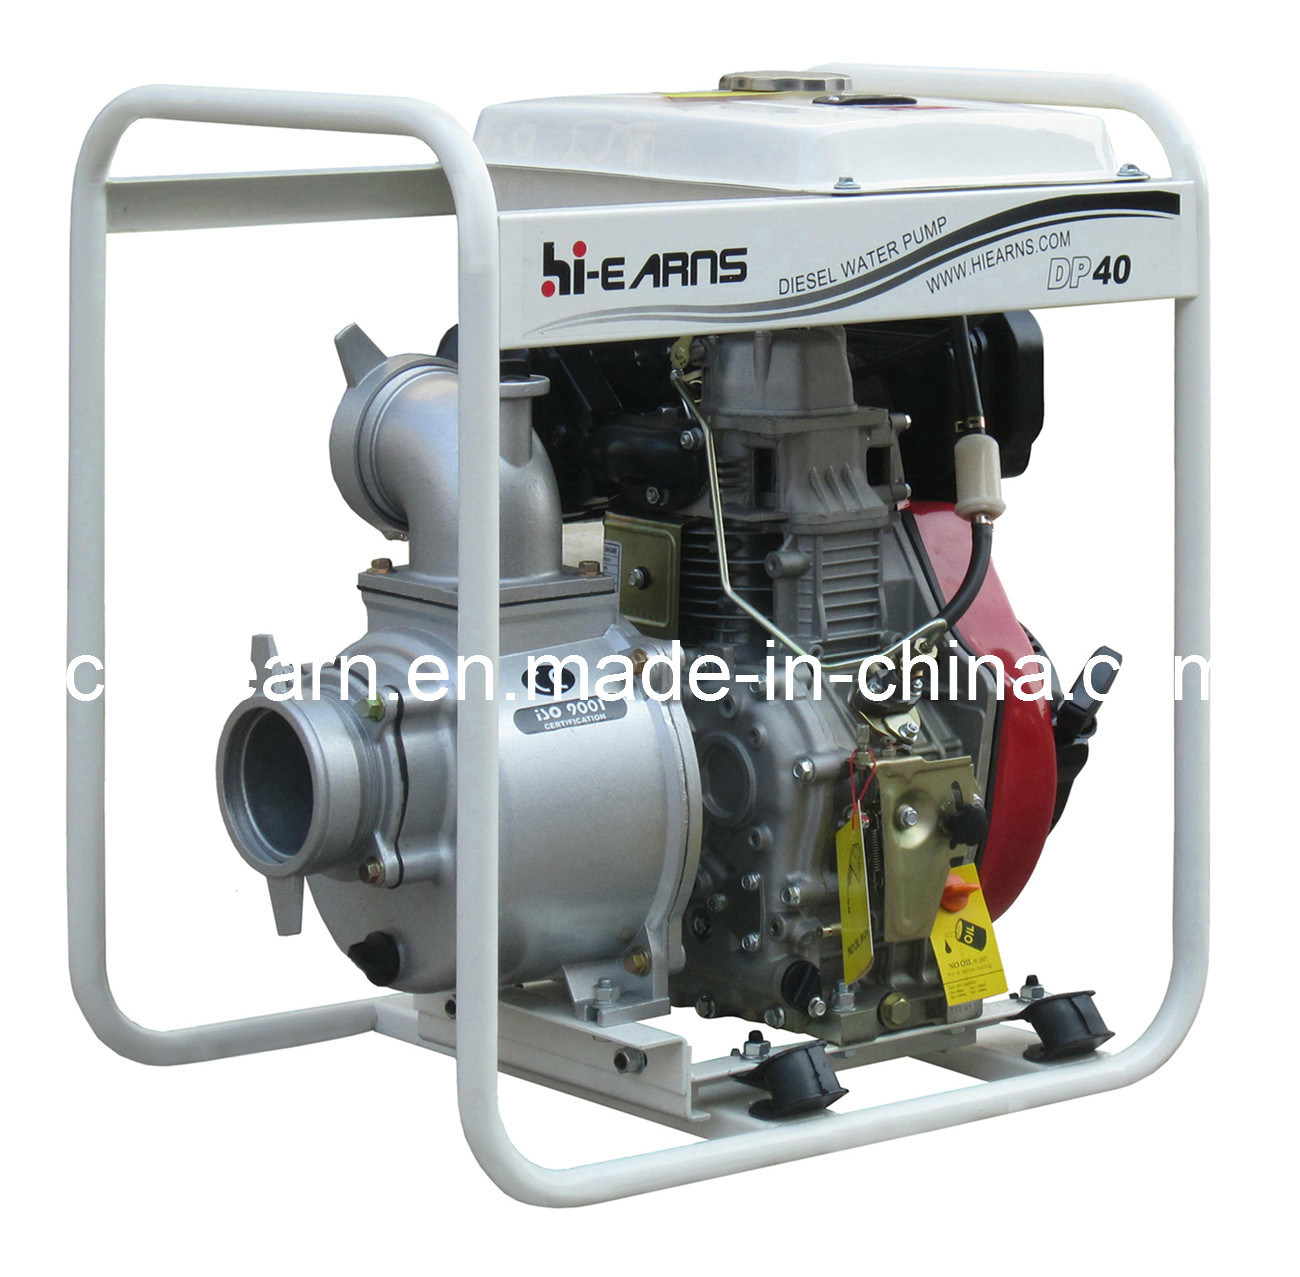 1.5-4 Inch Diesel Engine Water Pump (DP40)